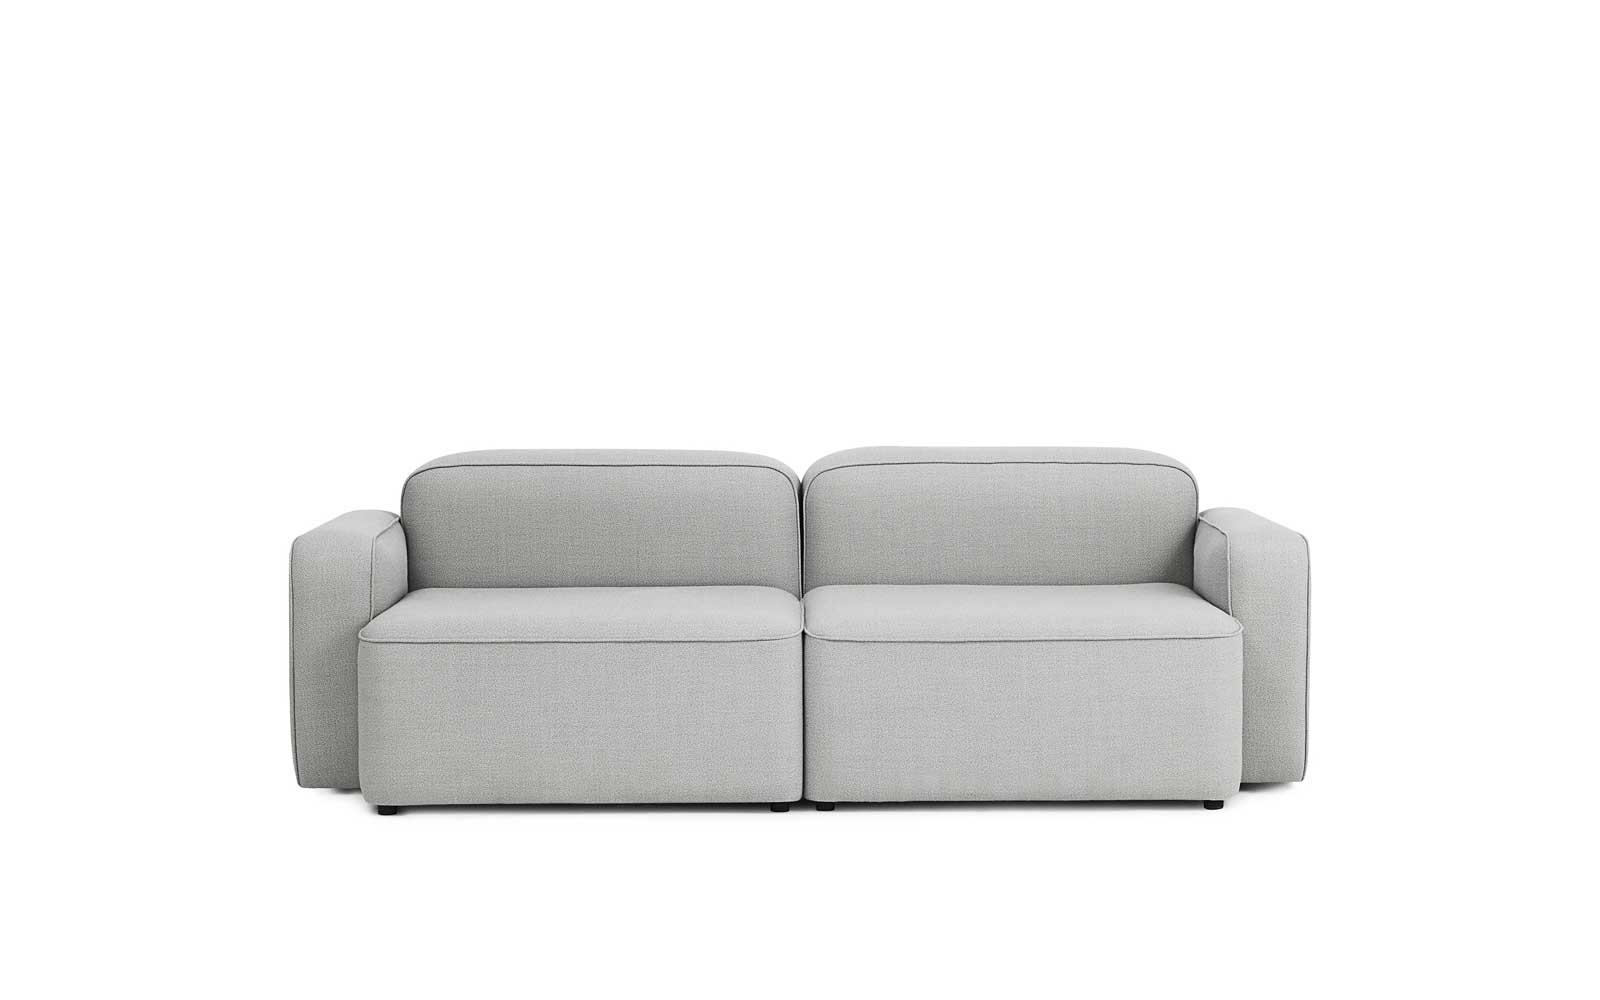 Rope Sofa 2 seater1